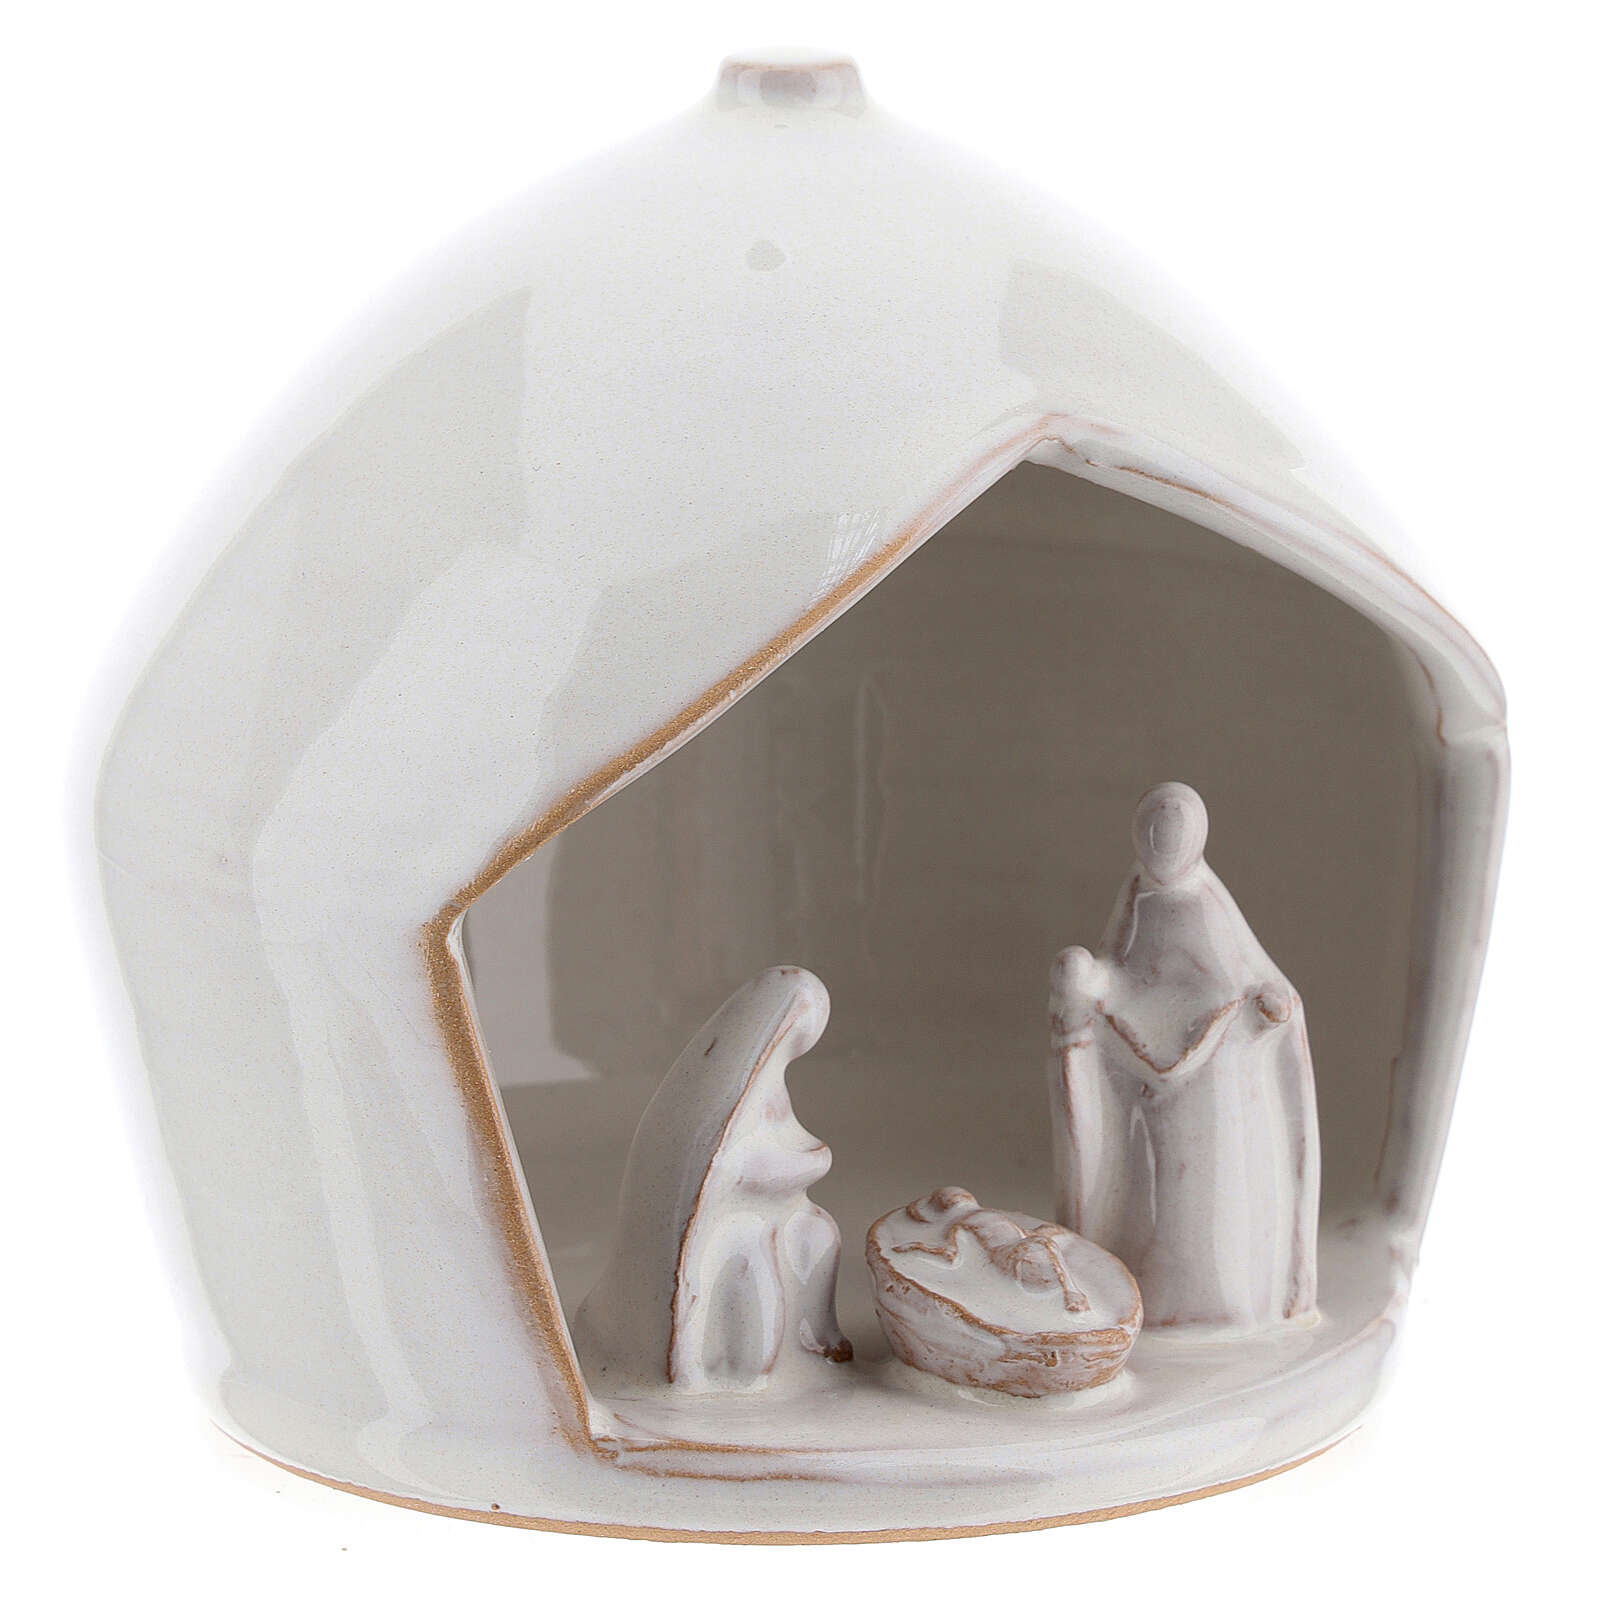 Modern nativity set in white terracotta square 12x11 cm 4